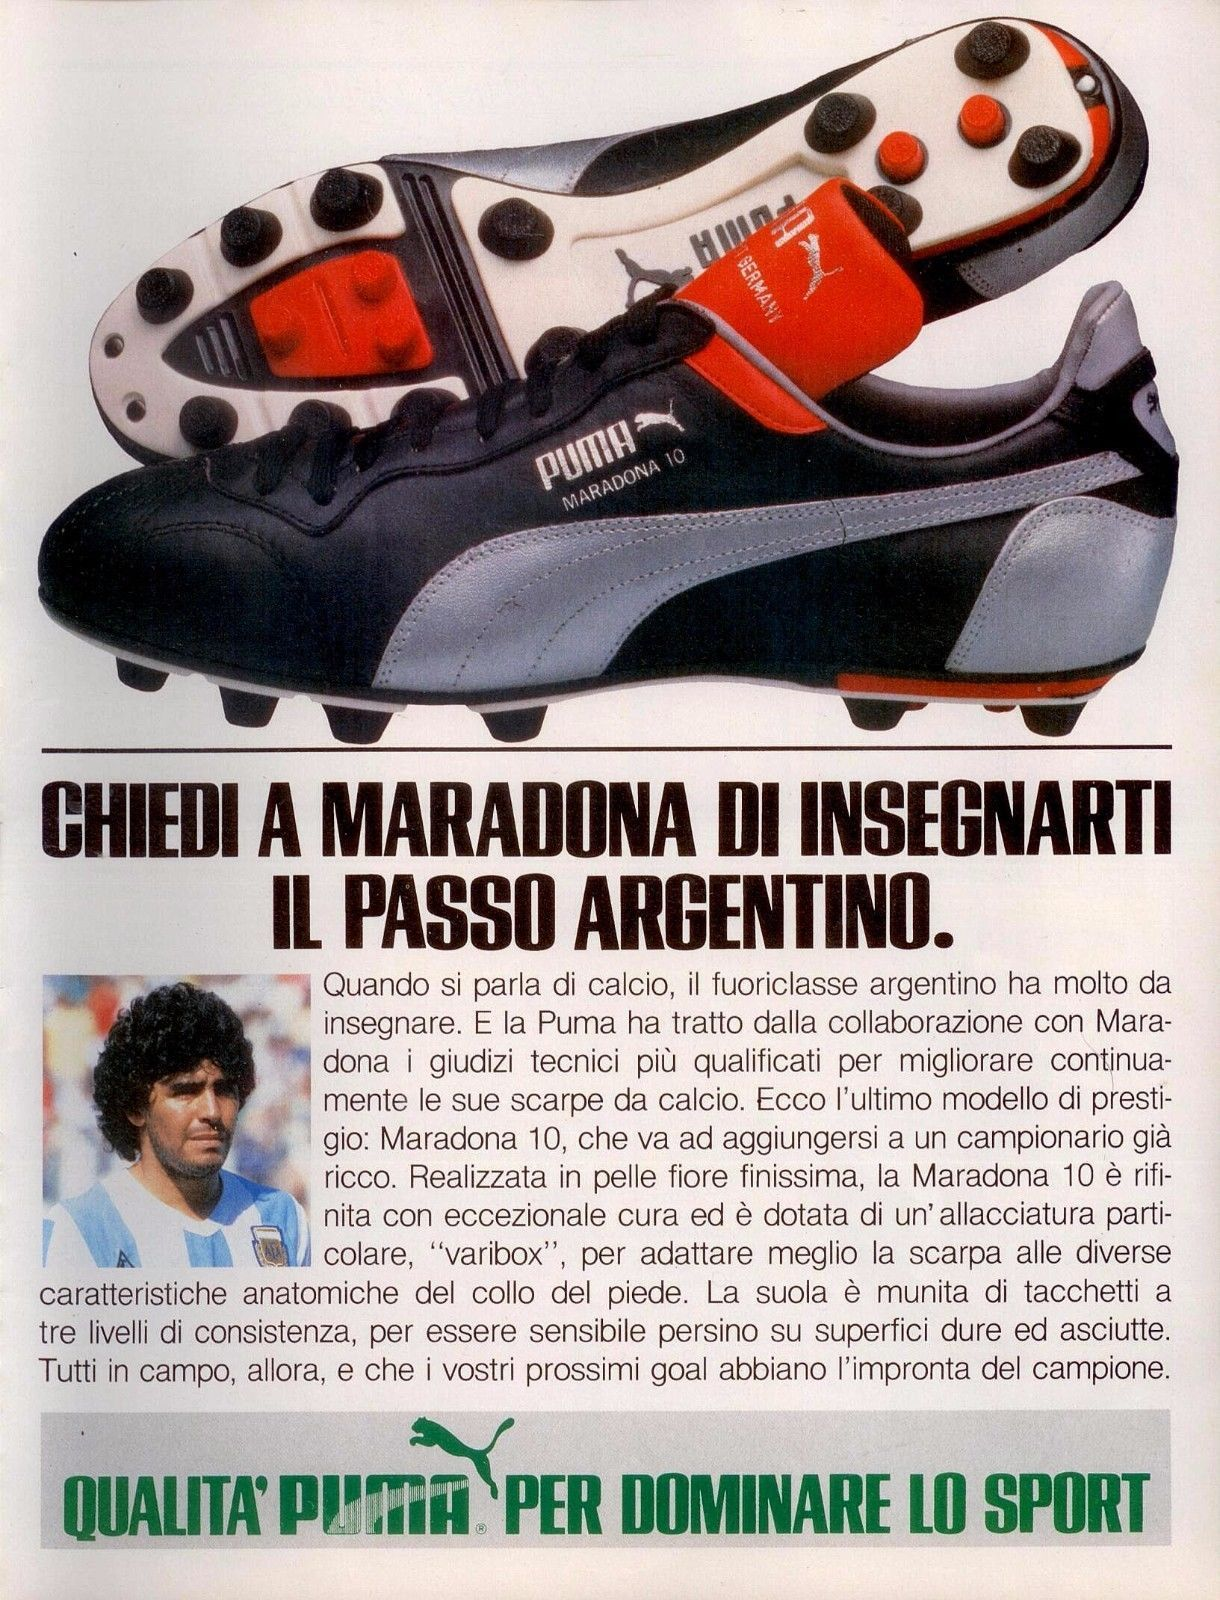 83d1638f7 Find many great new & used options and get the best deals for Original  Advertising years 70 Puma Maradona 10 advert Werbung reklame Vintage at the  best ...